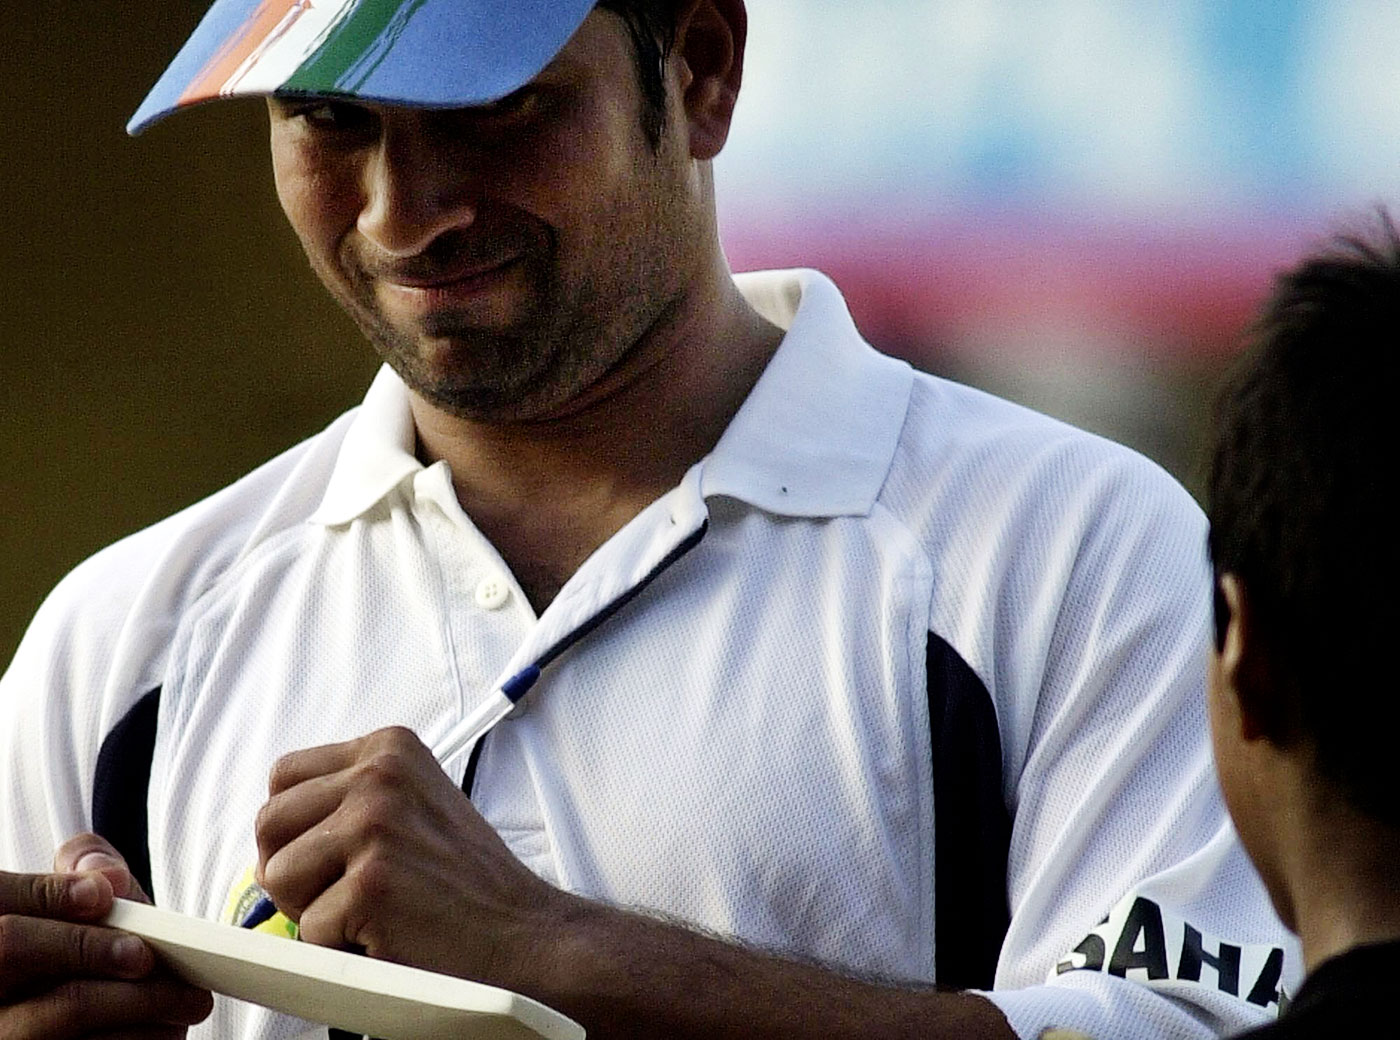 Sachin Tendulkar smiles while signing an autograph for a young fan